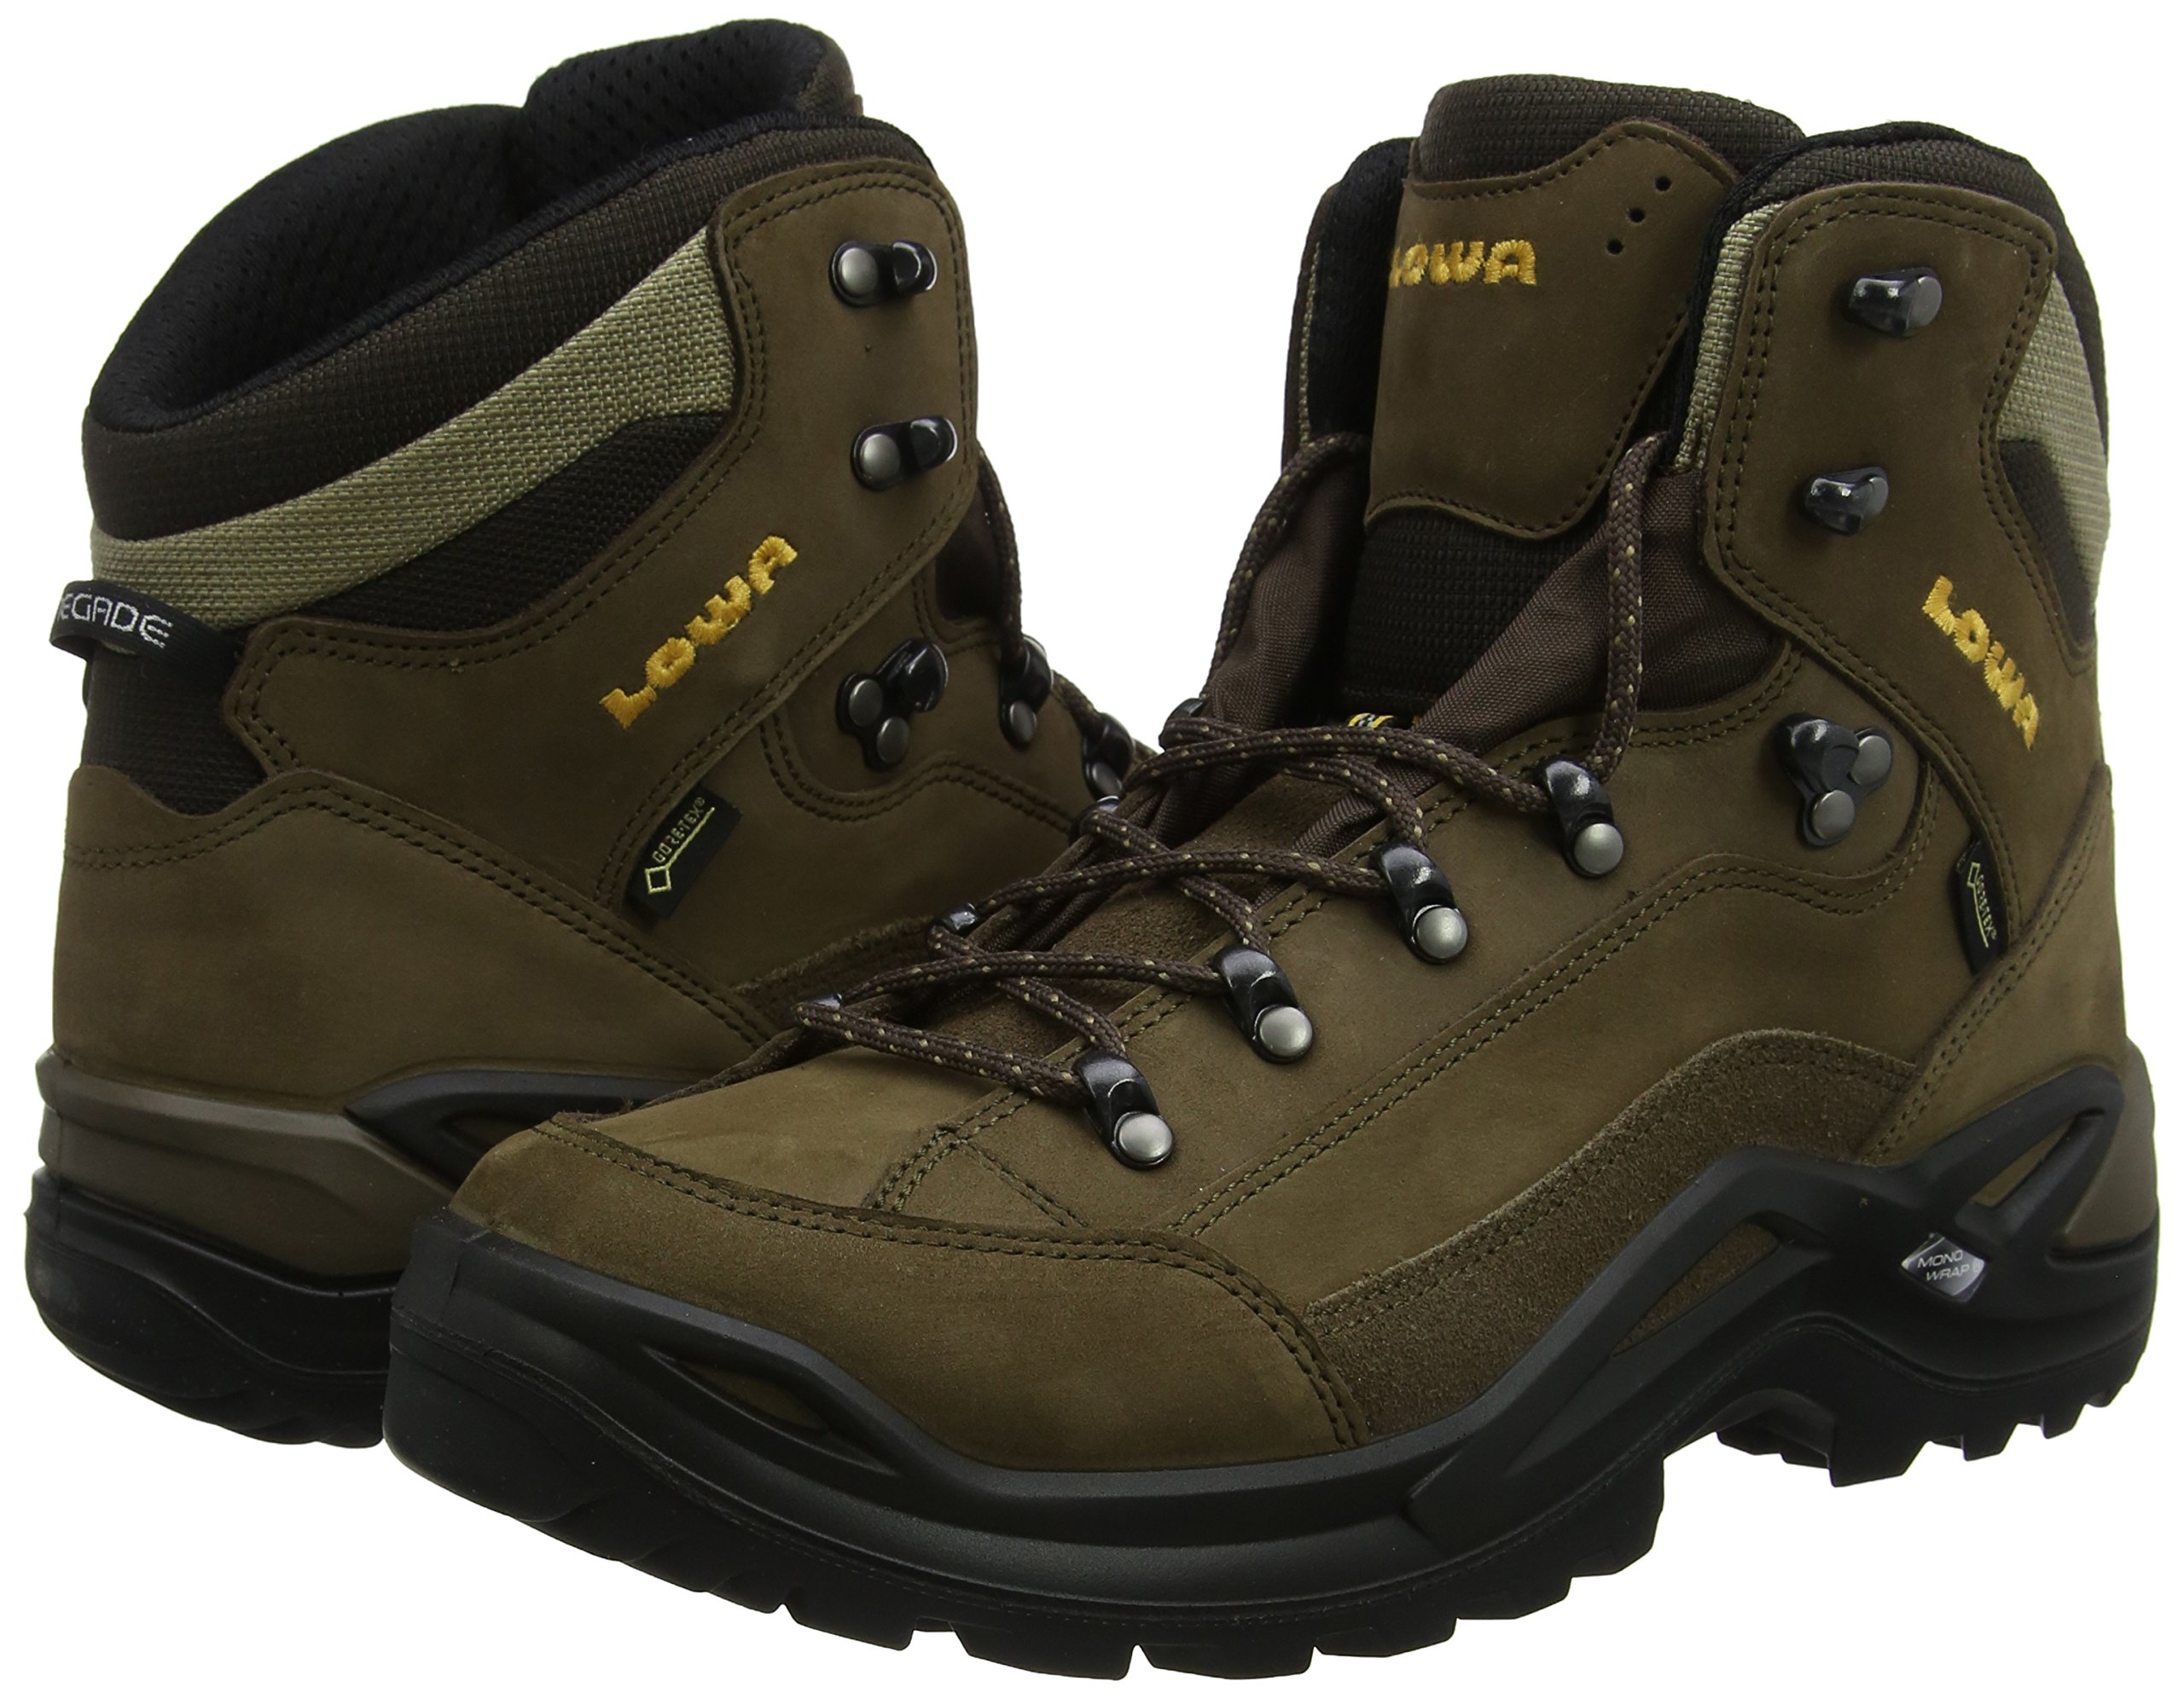 91IV6M1CYCL - Lowa Men's Renegade GTX Mid High Rise Hiking Boots